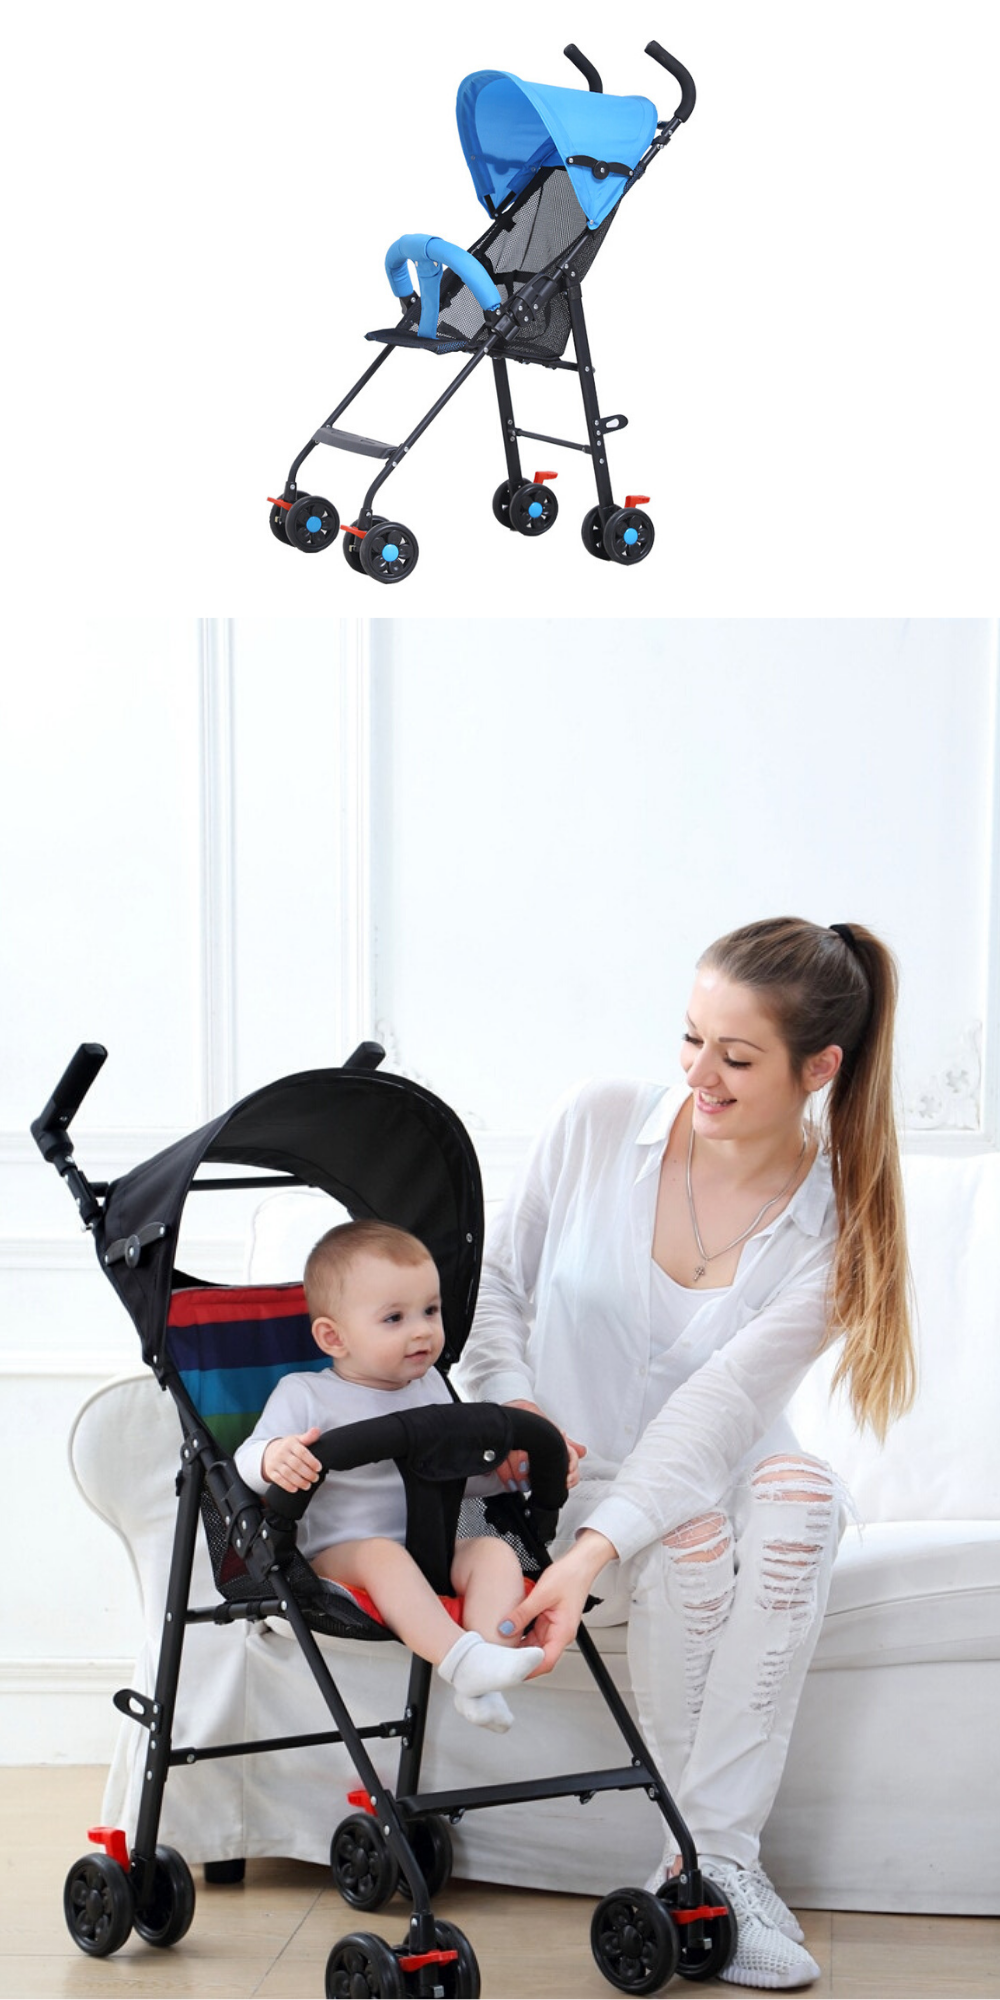 Baby stroller Baby stroller super light and easy to